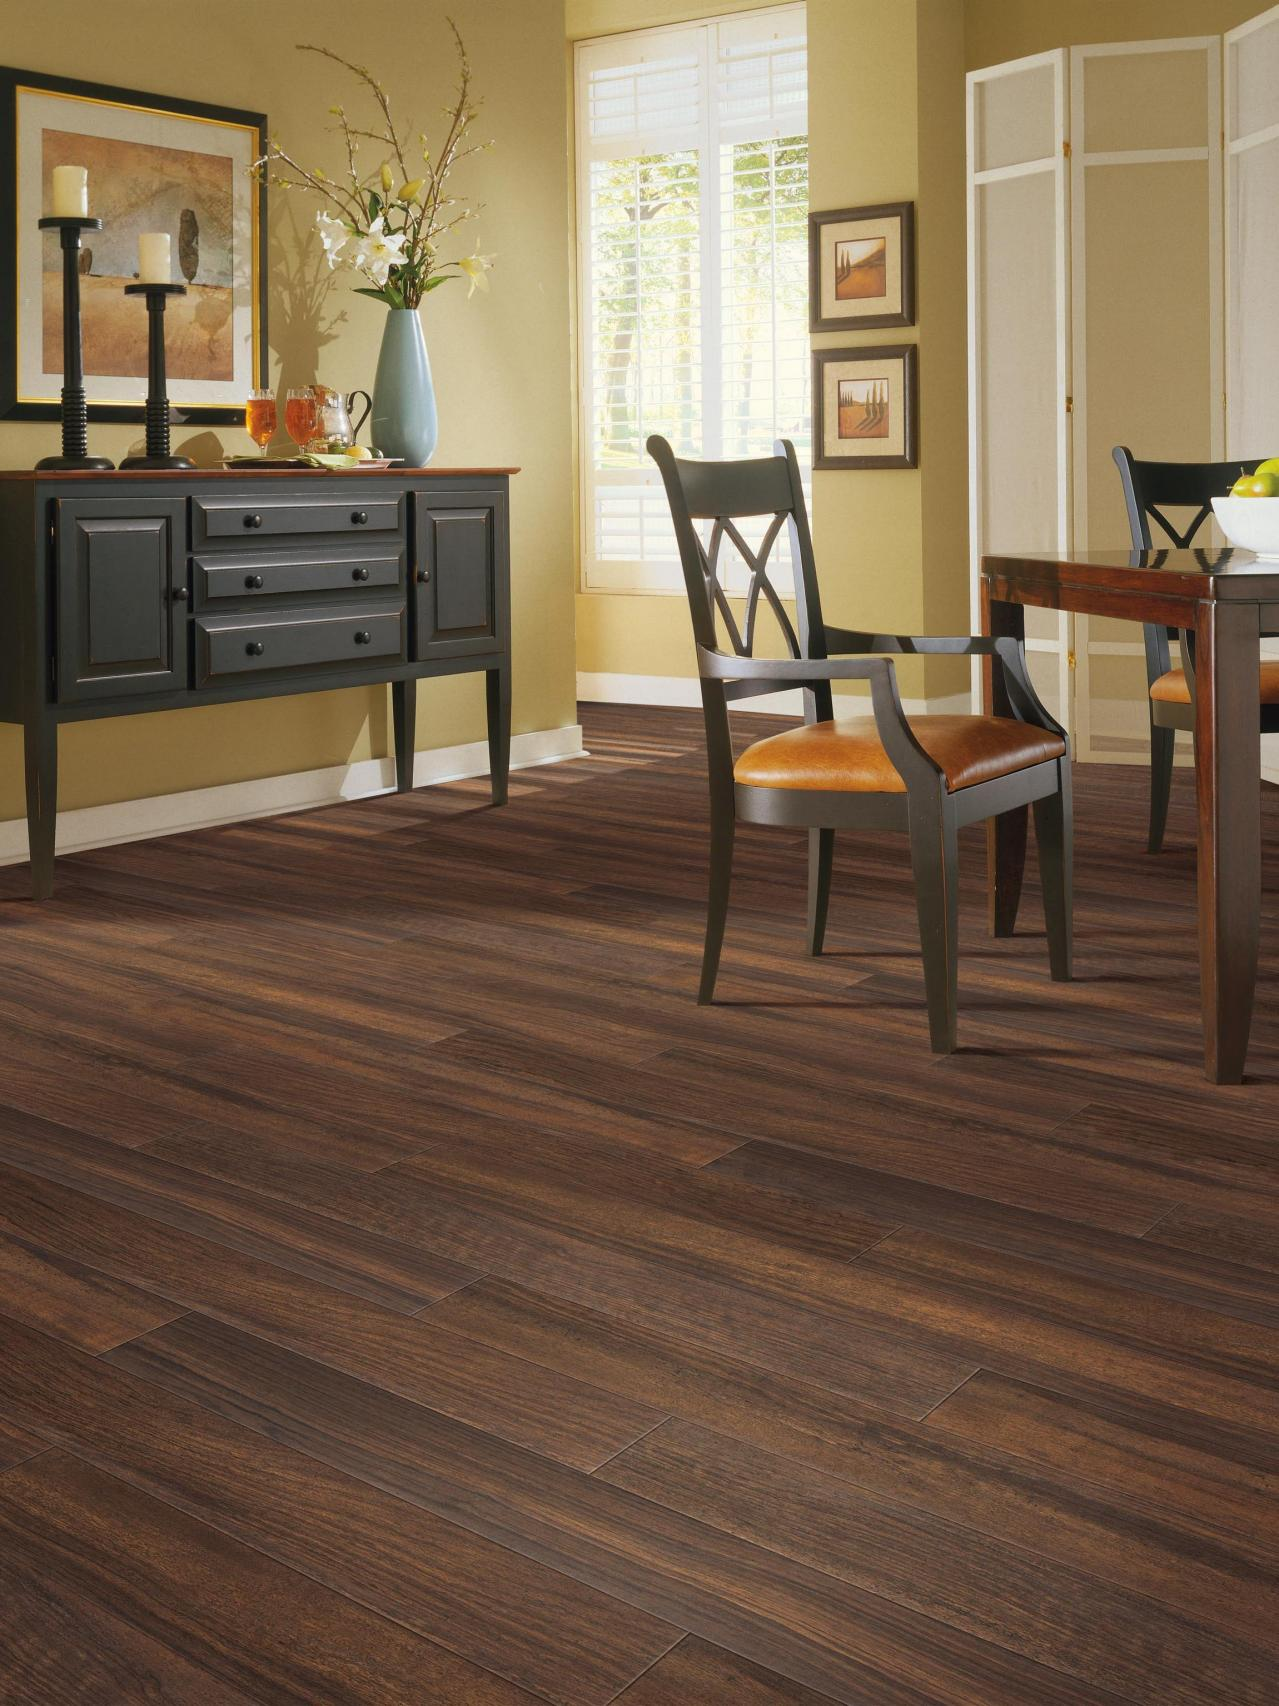 Laminate flooring for basements hgtv - Laminate or wood flooring ...